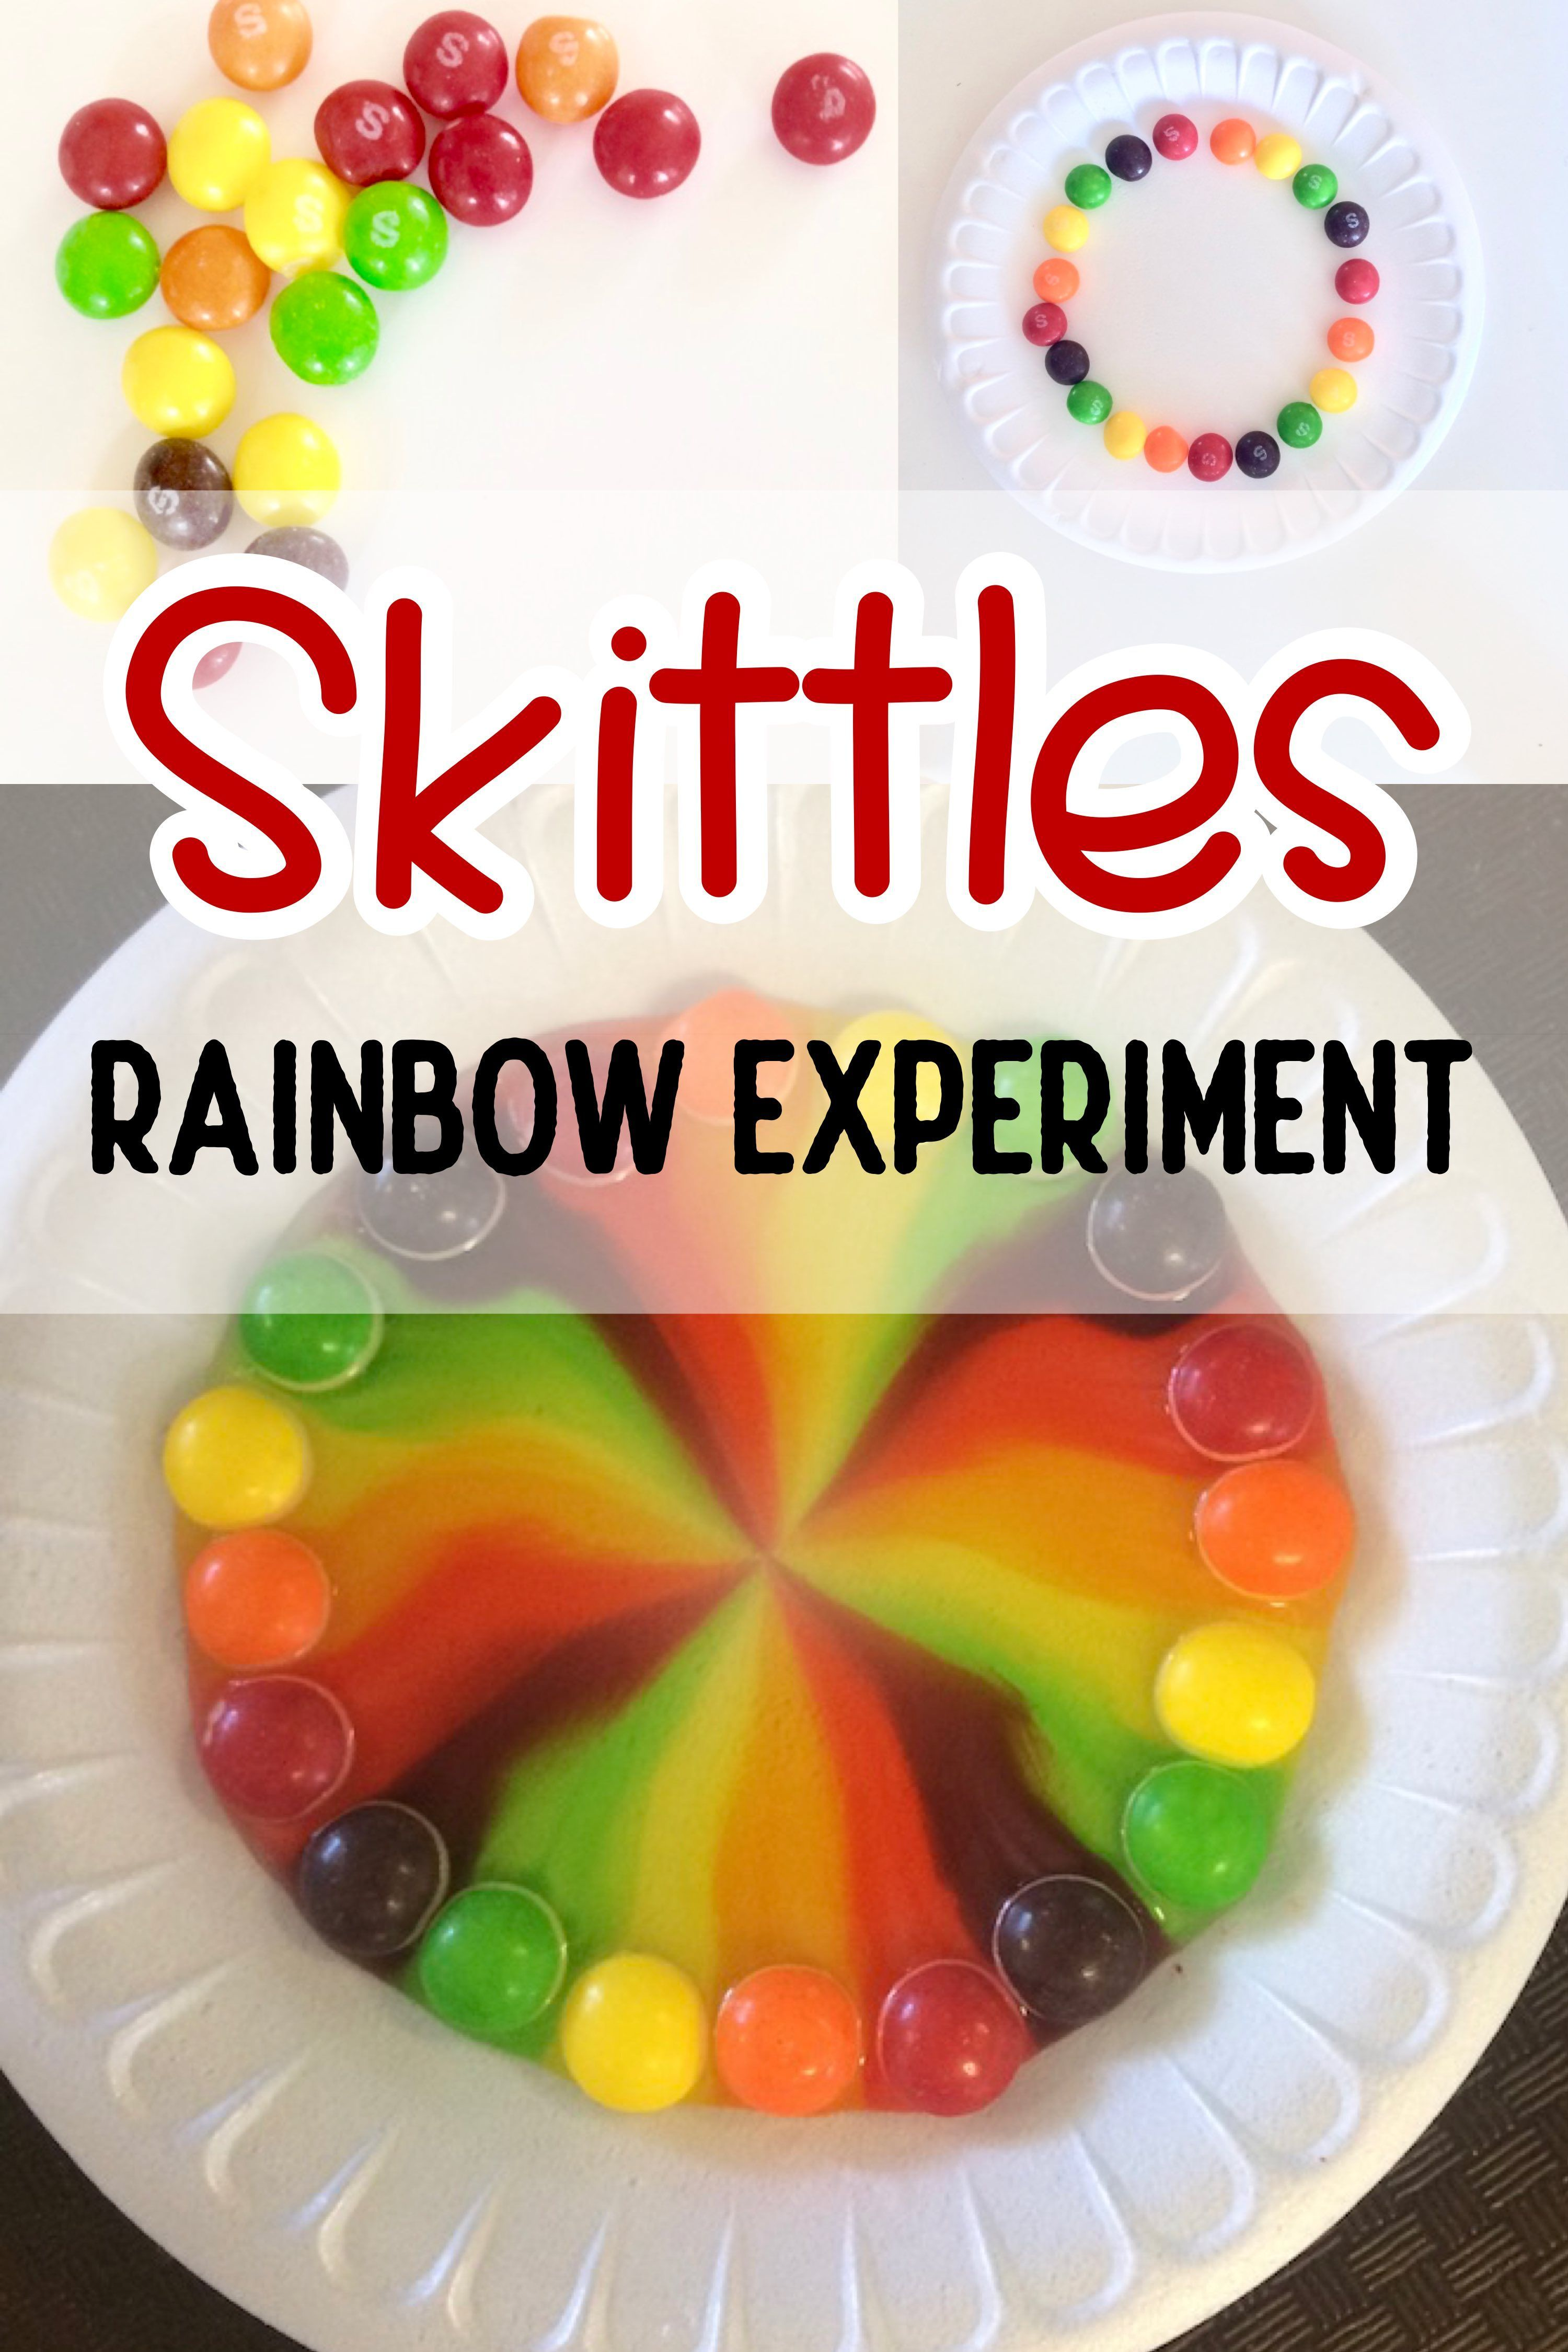 Skittles Science Experiment In